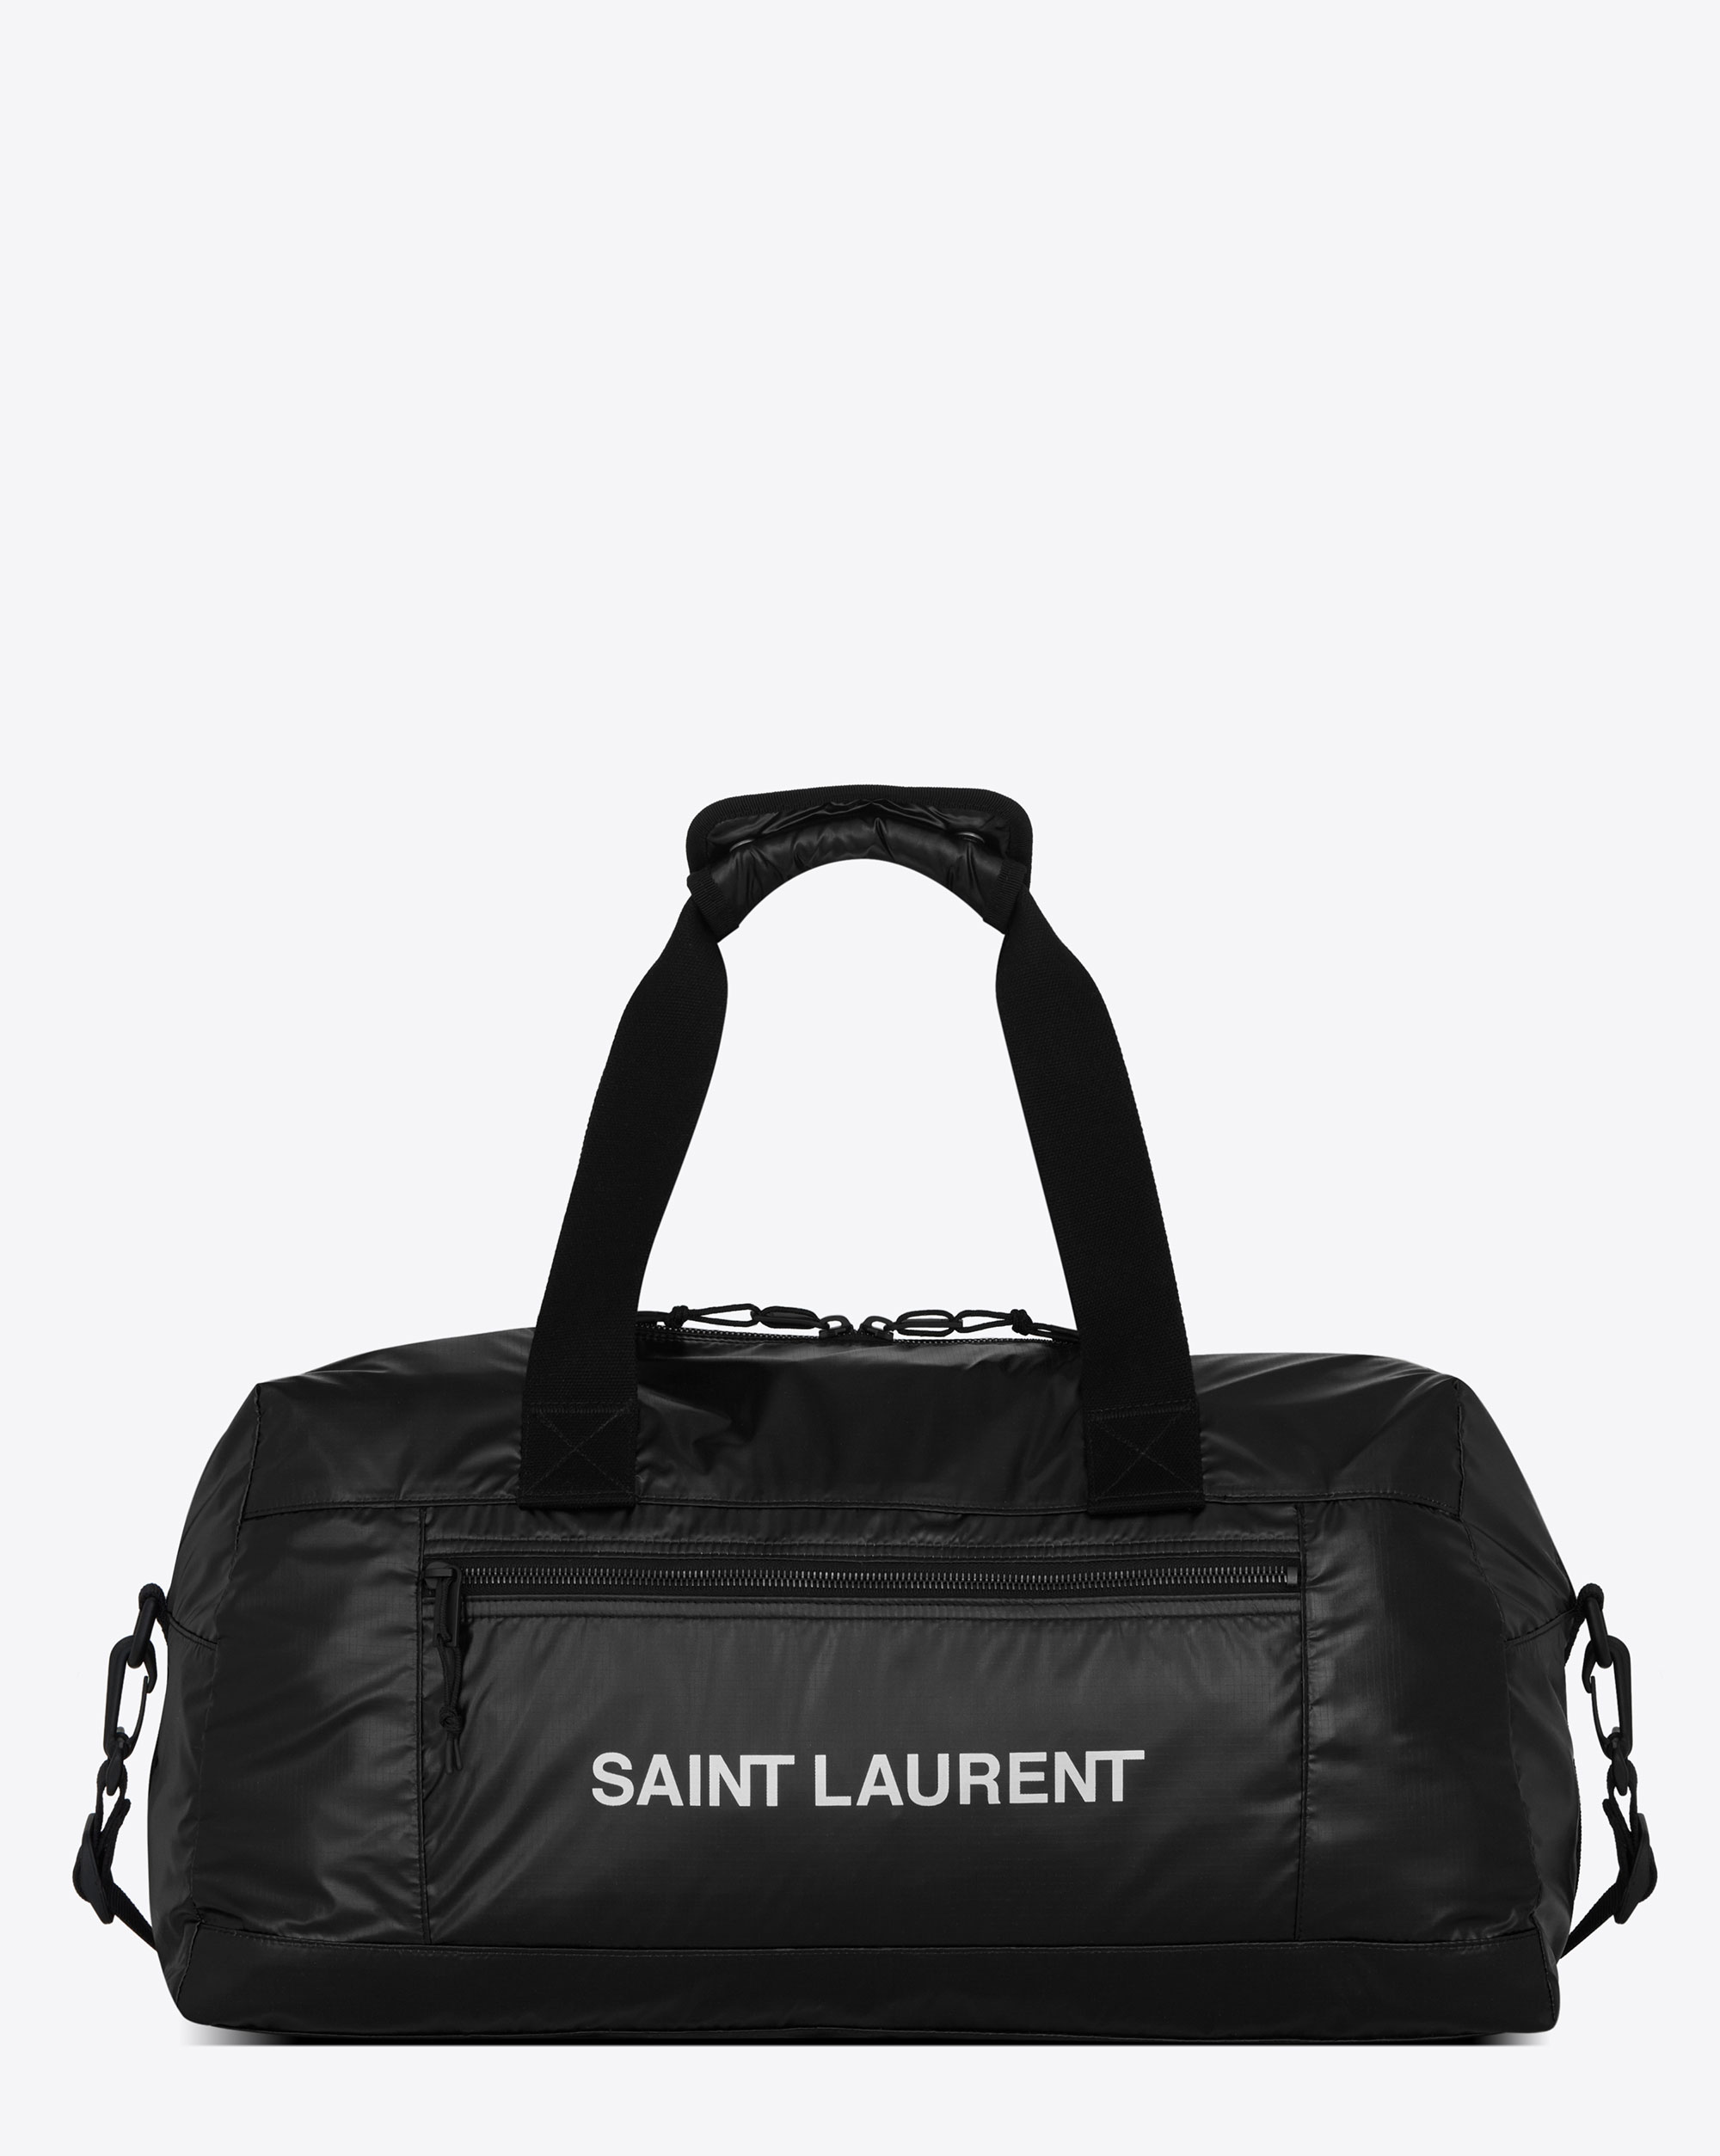 ダッフルバッグ ¥119,000 | ©︎ SAINT LAURENT BY ANTHONY VACCARELLO